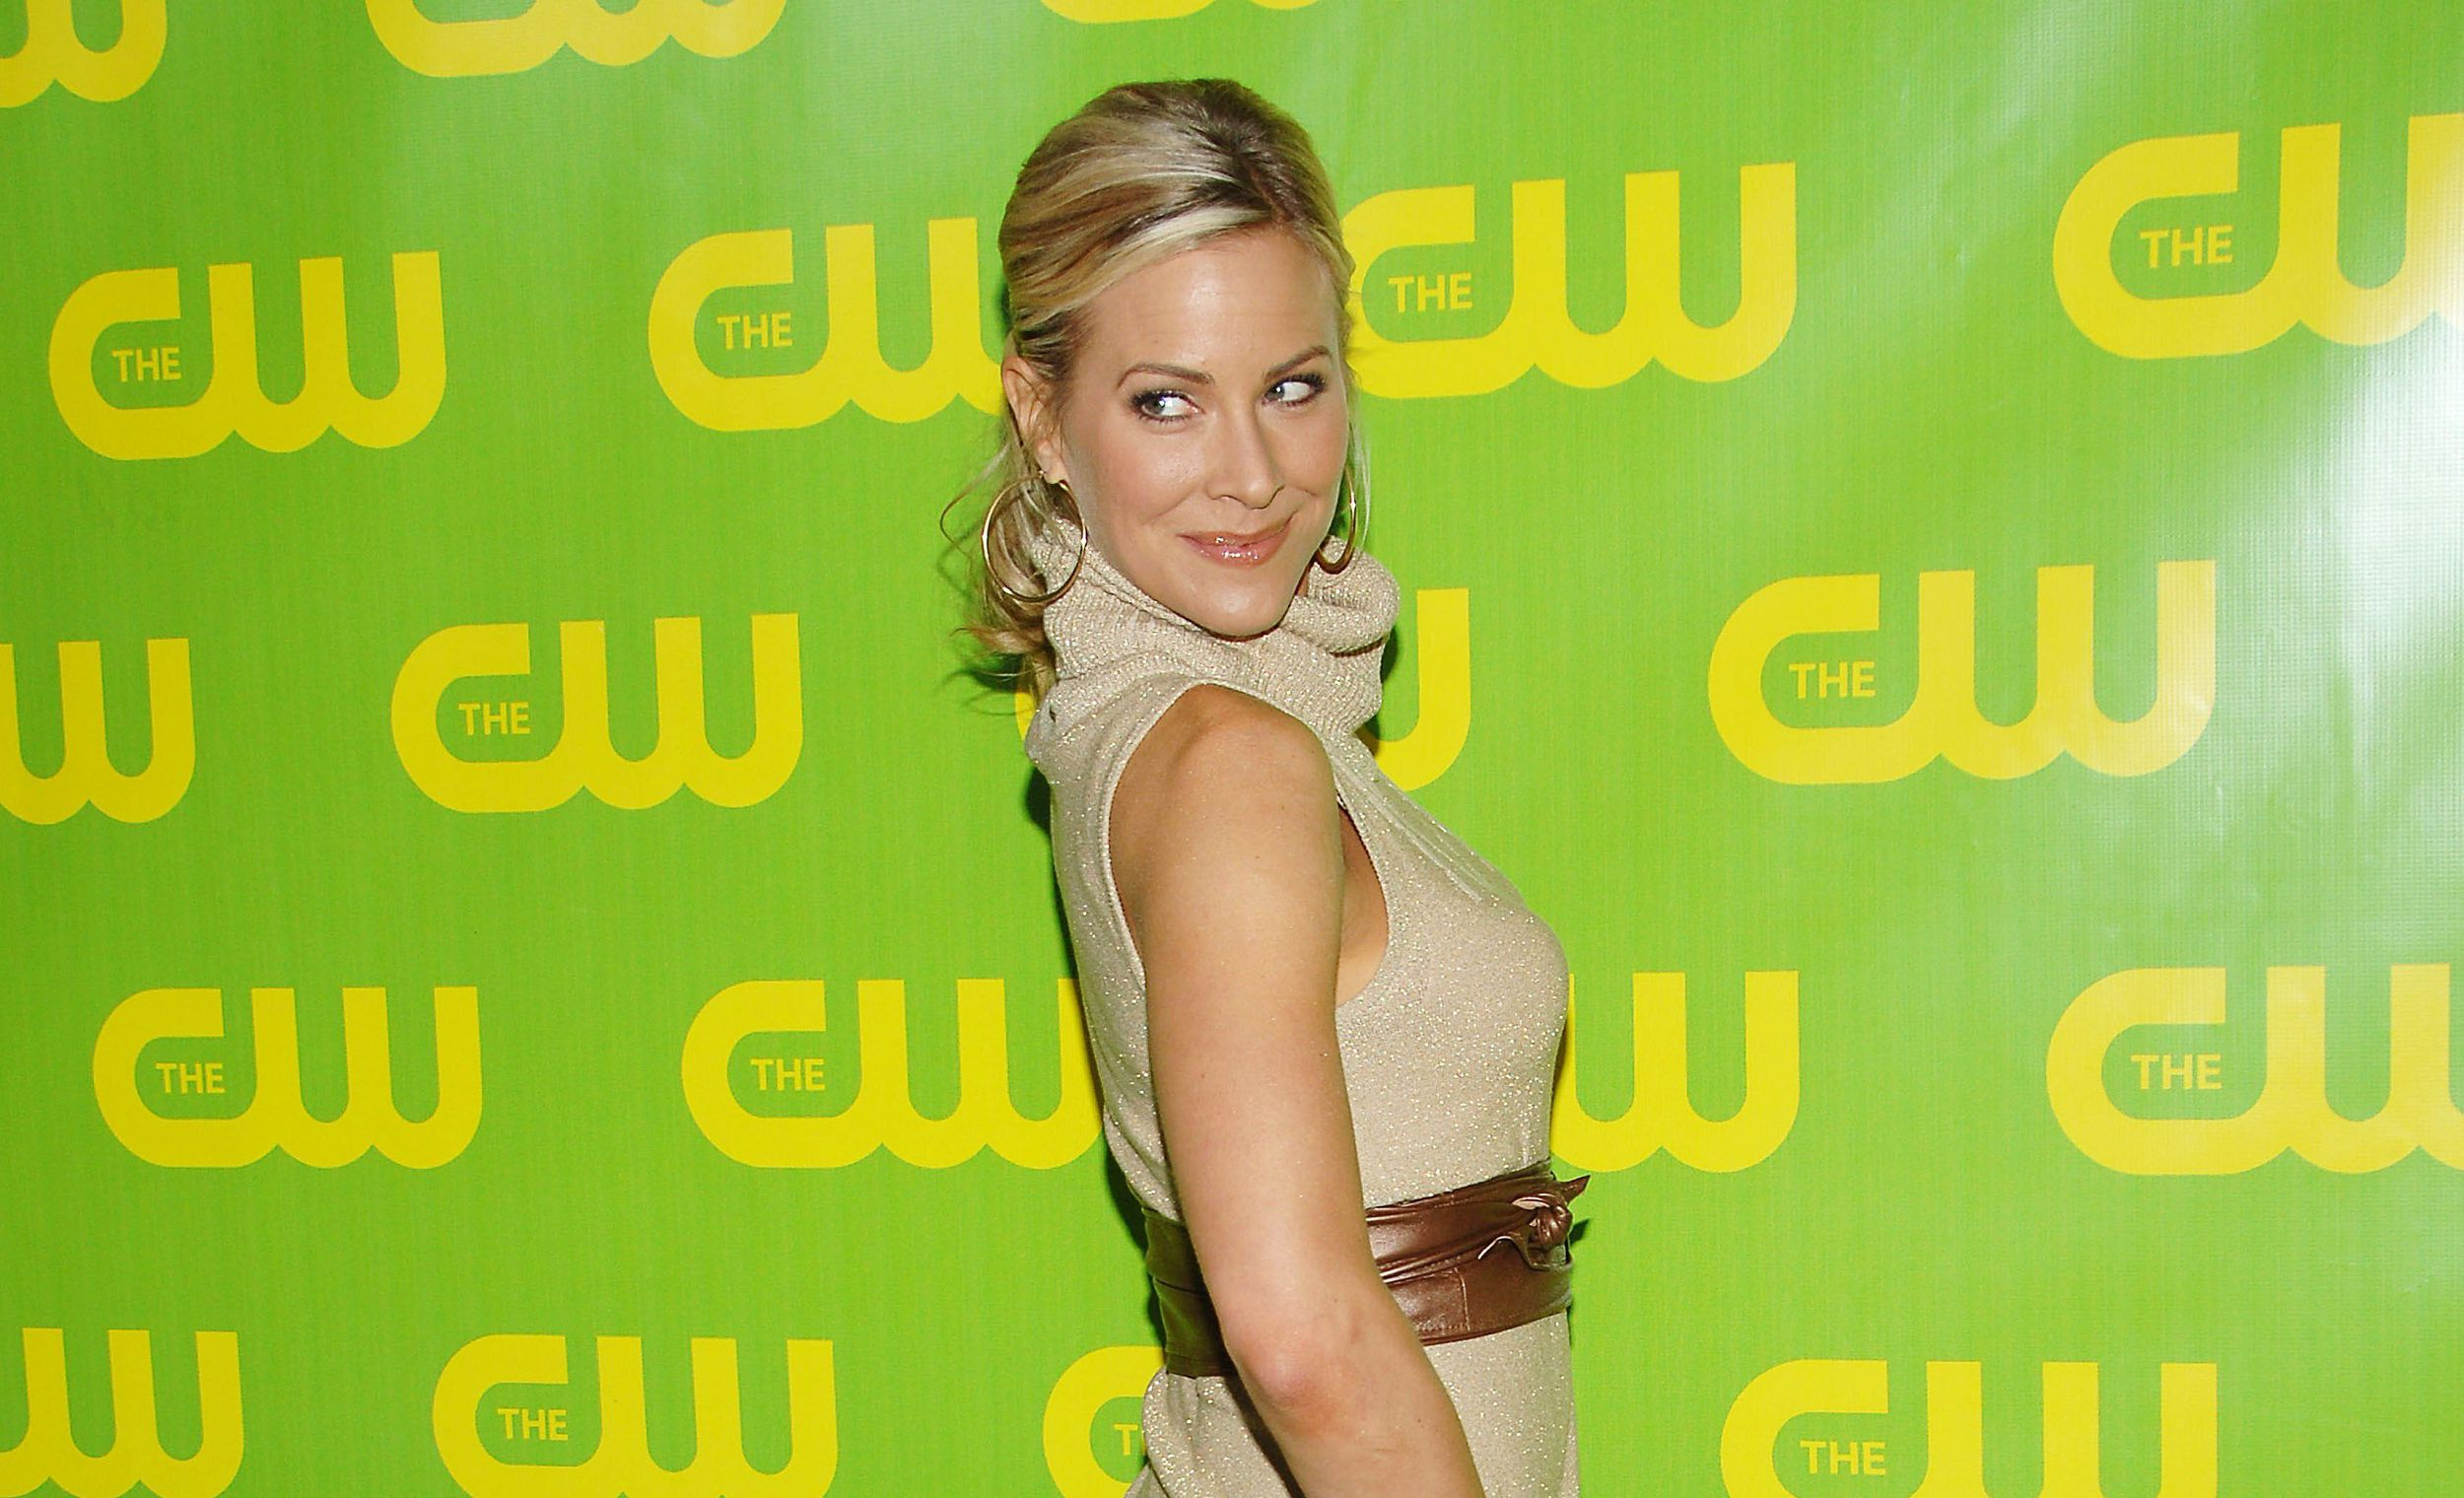 Brittany Daniel Wallpaper Pack